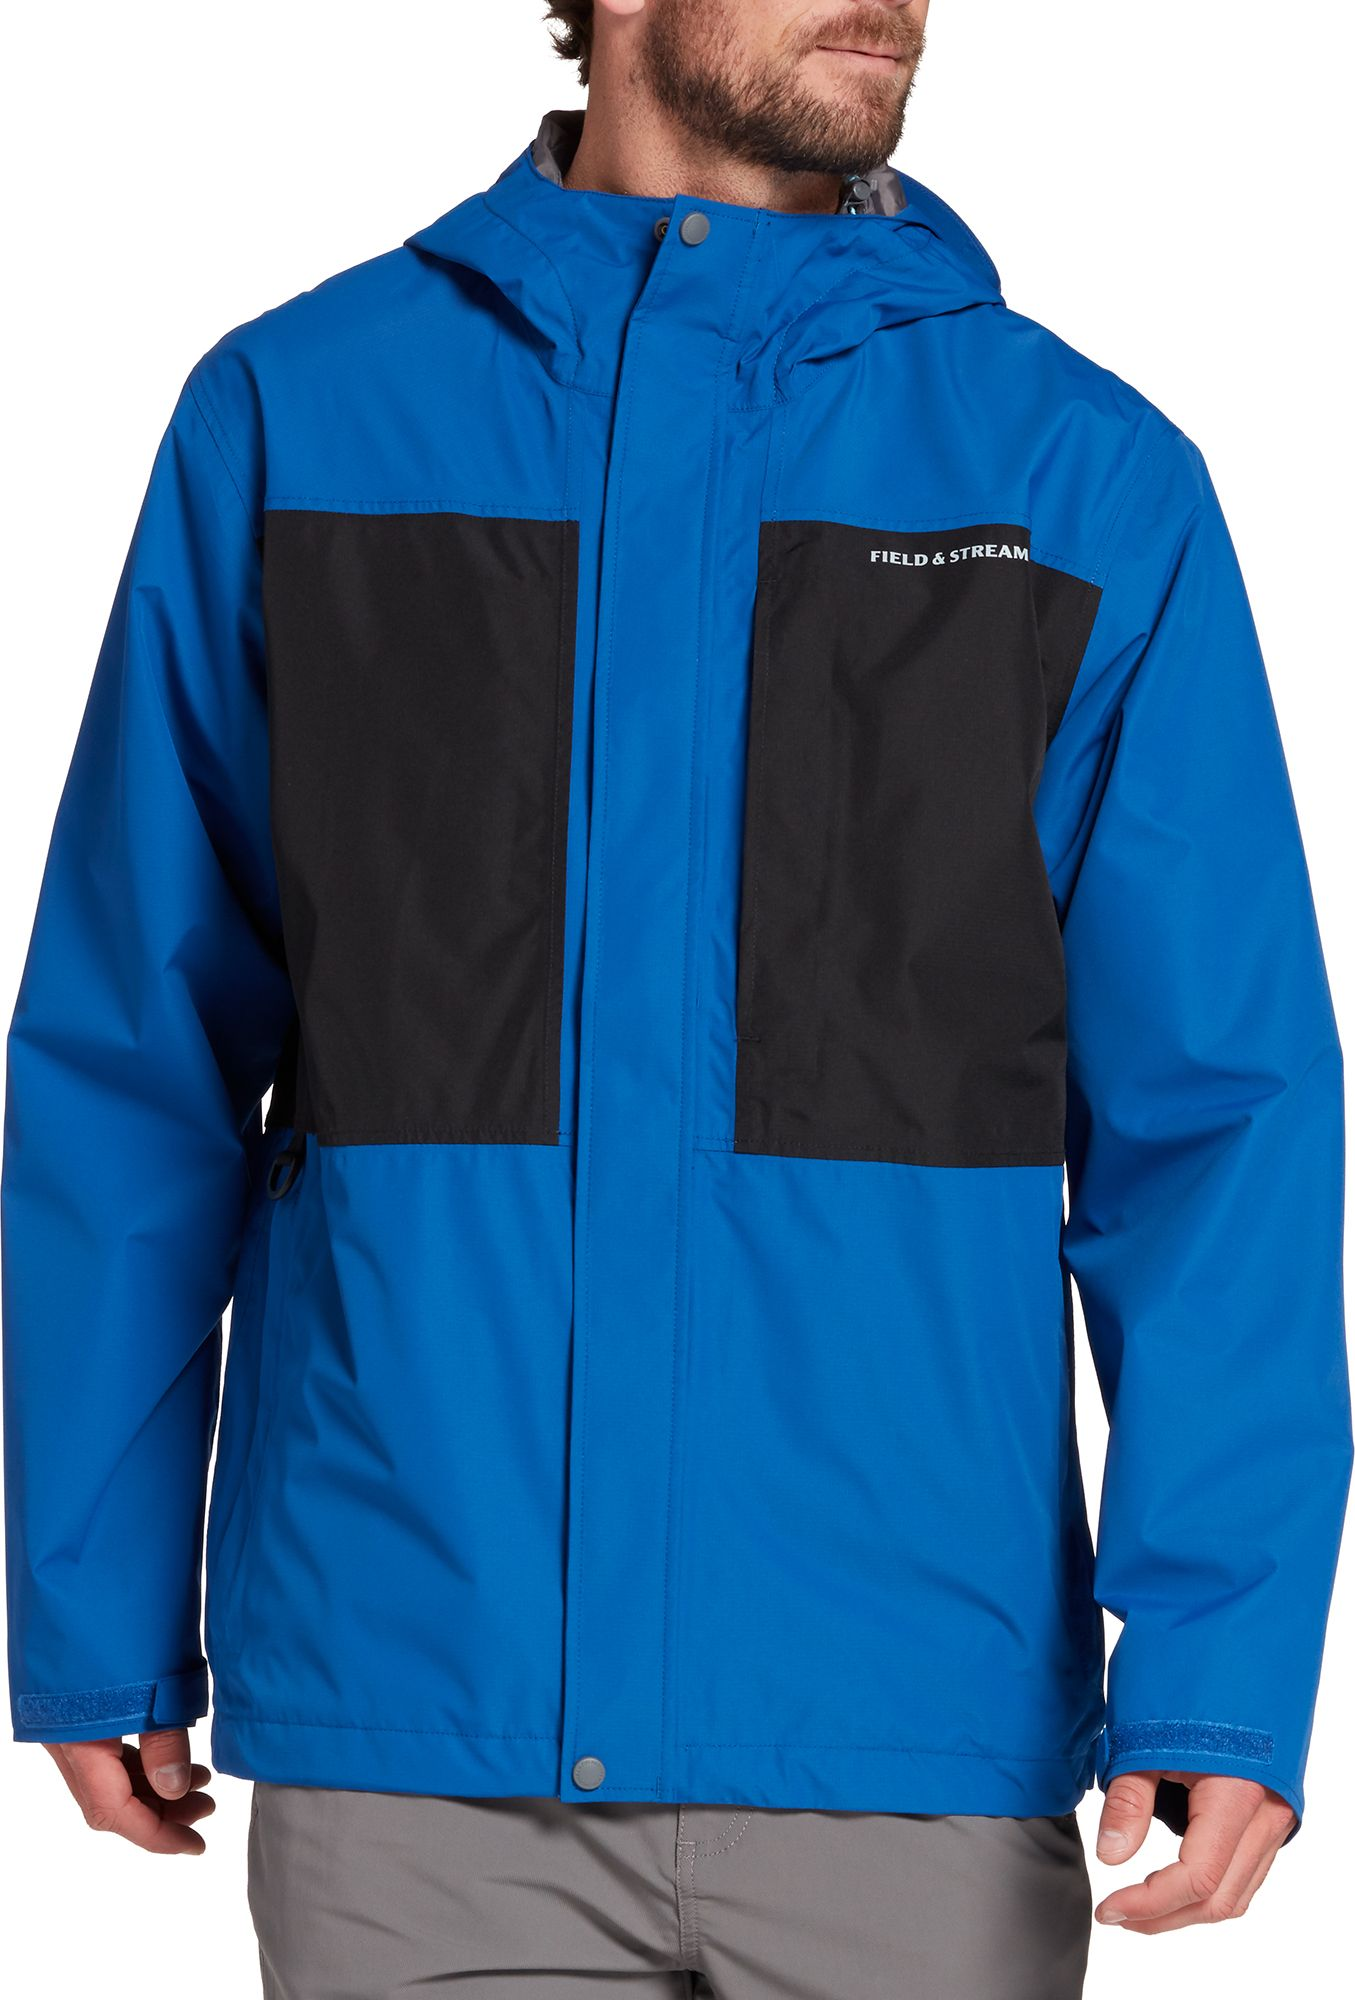 Field & Stream Men's Squall Defender 2.0 Fishing Jacket, Size: Small, Blue